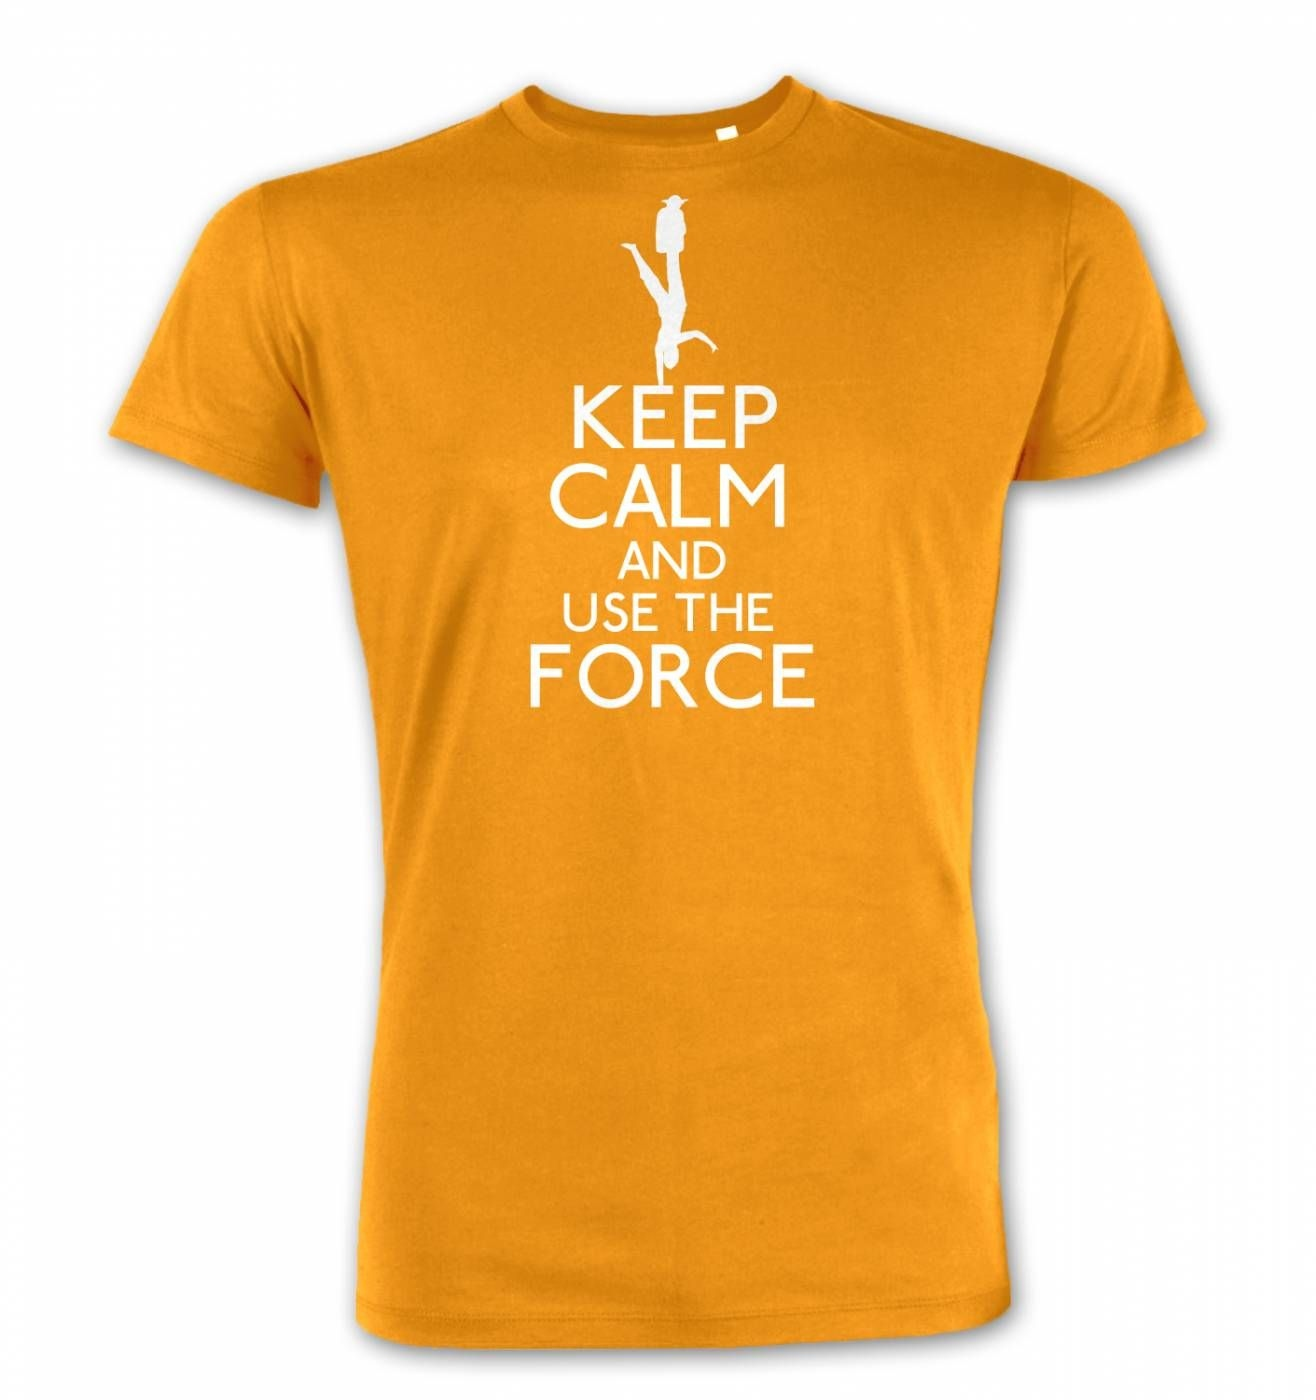 Keep Calm and Use the Force t-shirt - Somethinggeeky